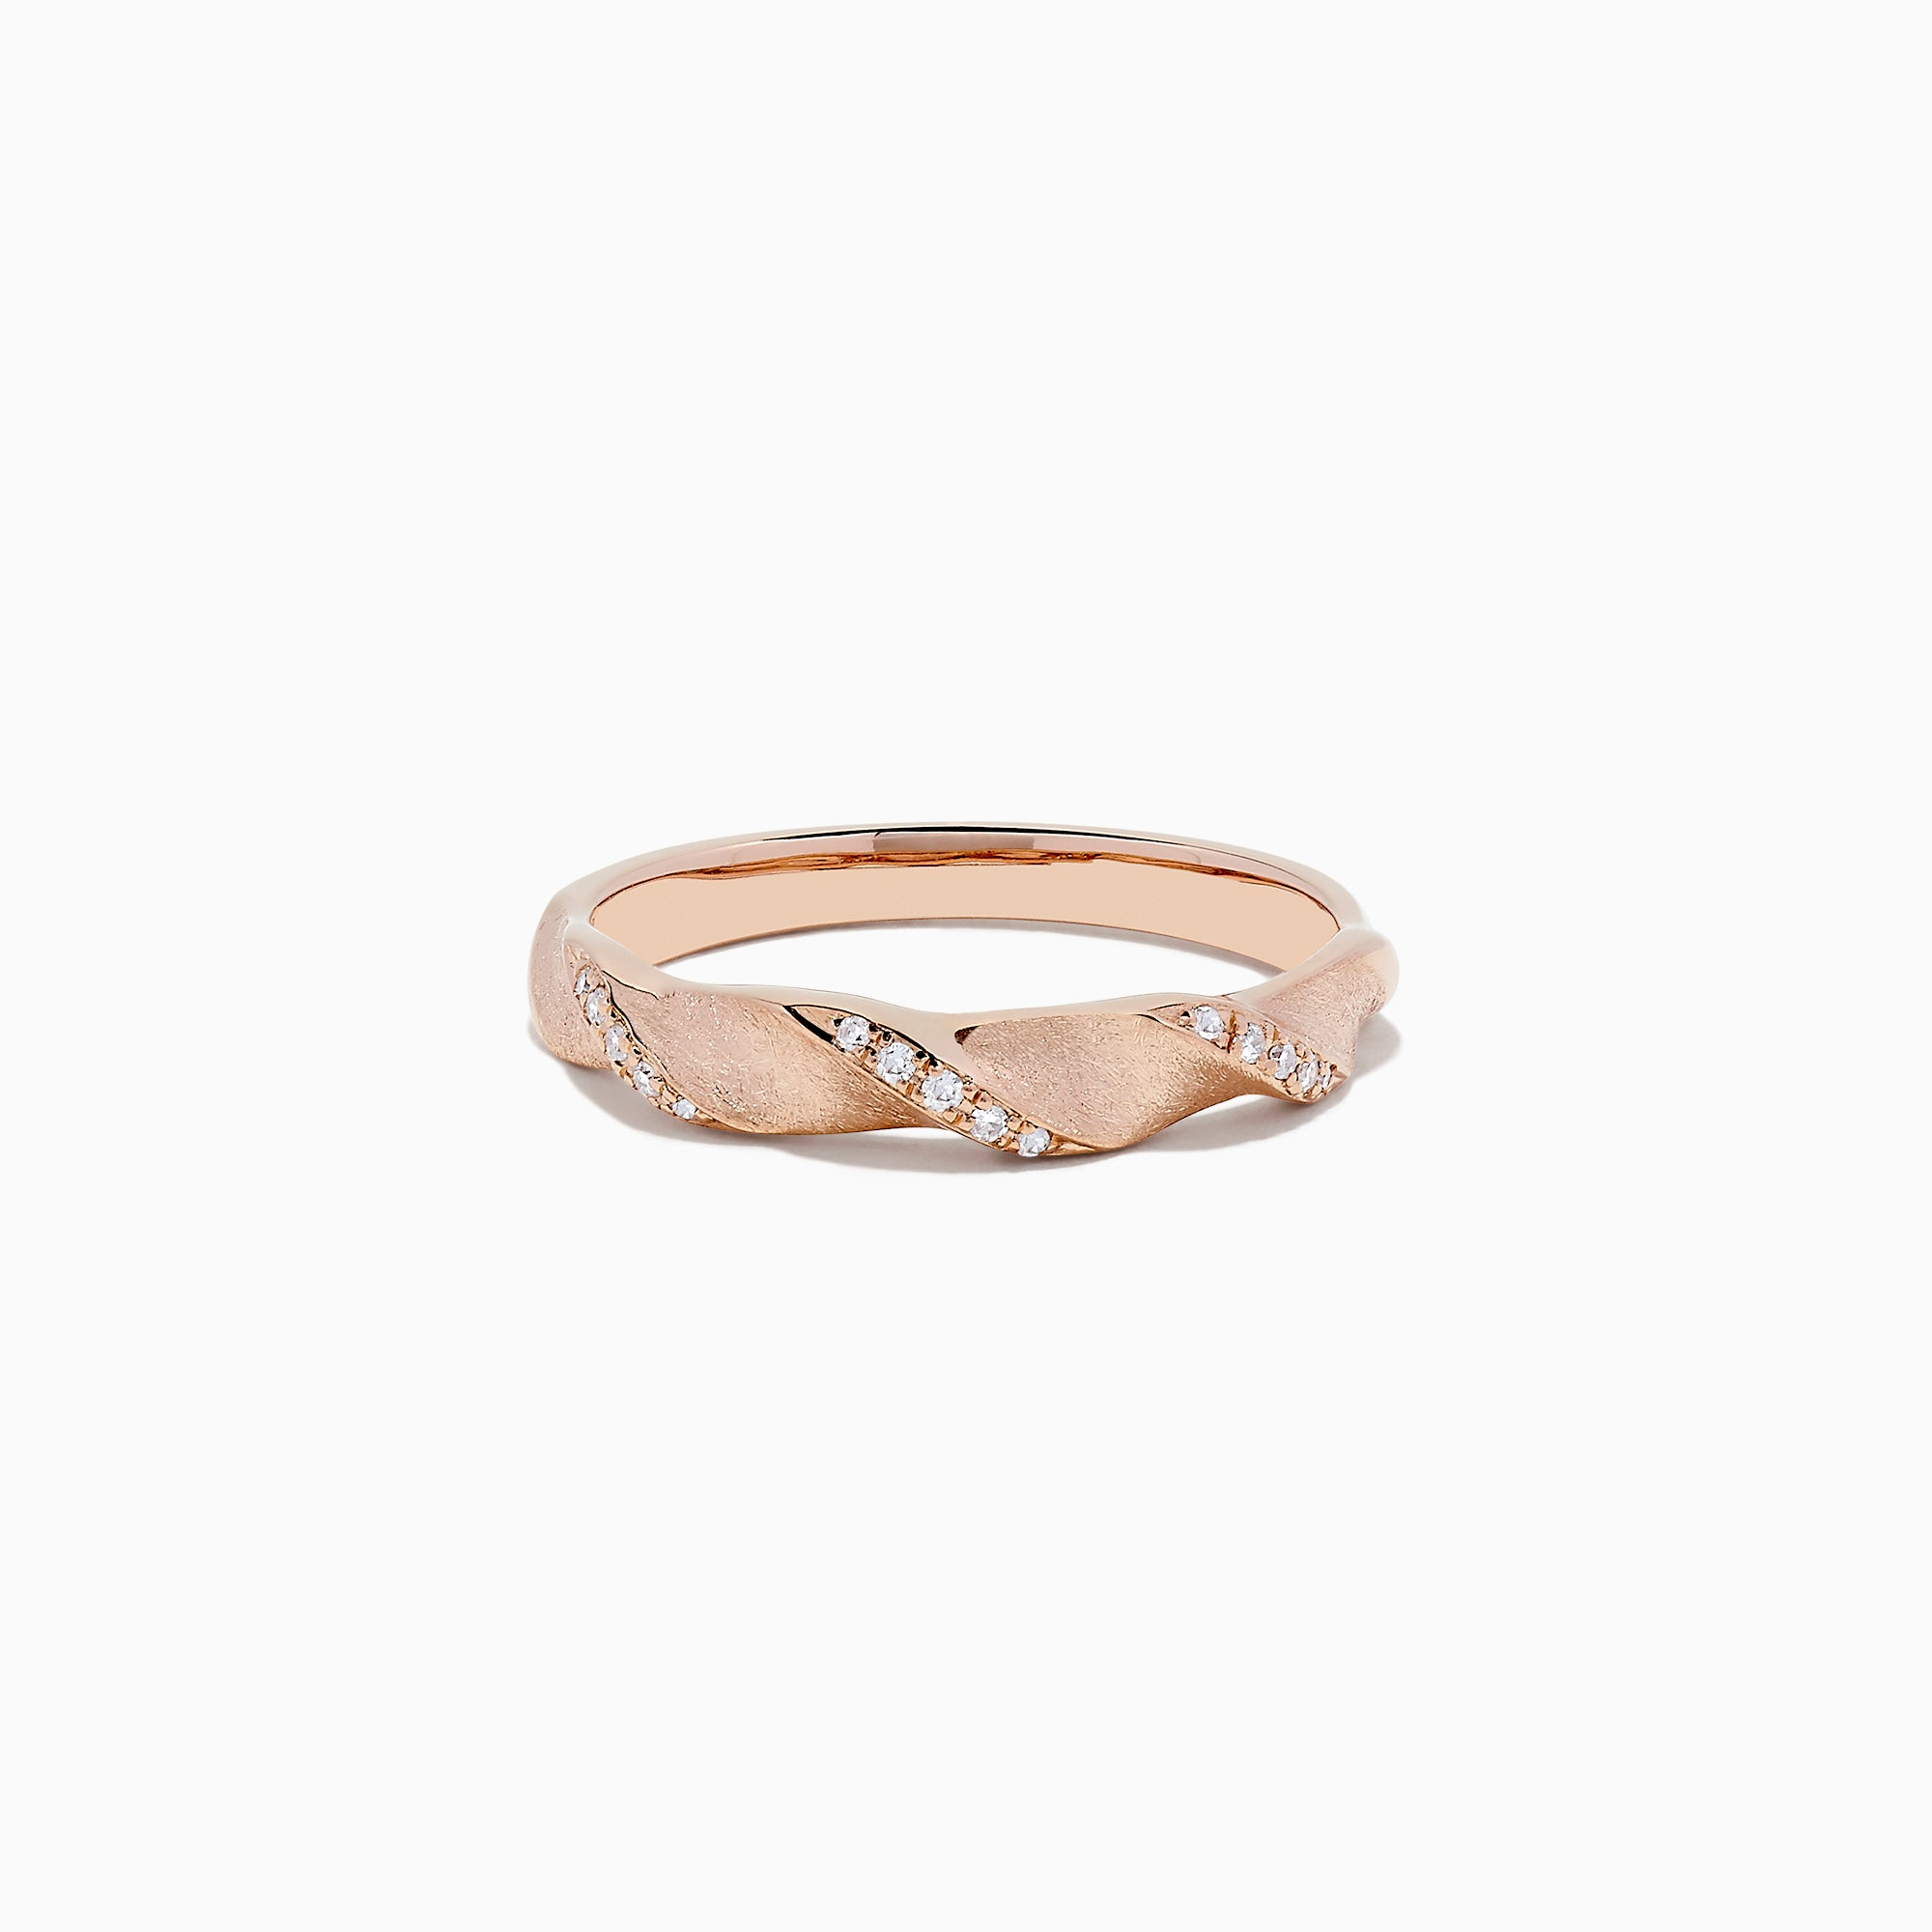 Effy 14K Rose Gold Diamond Twist Ring, 0.07 TCW